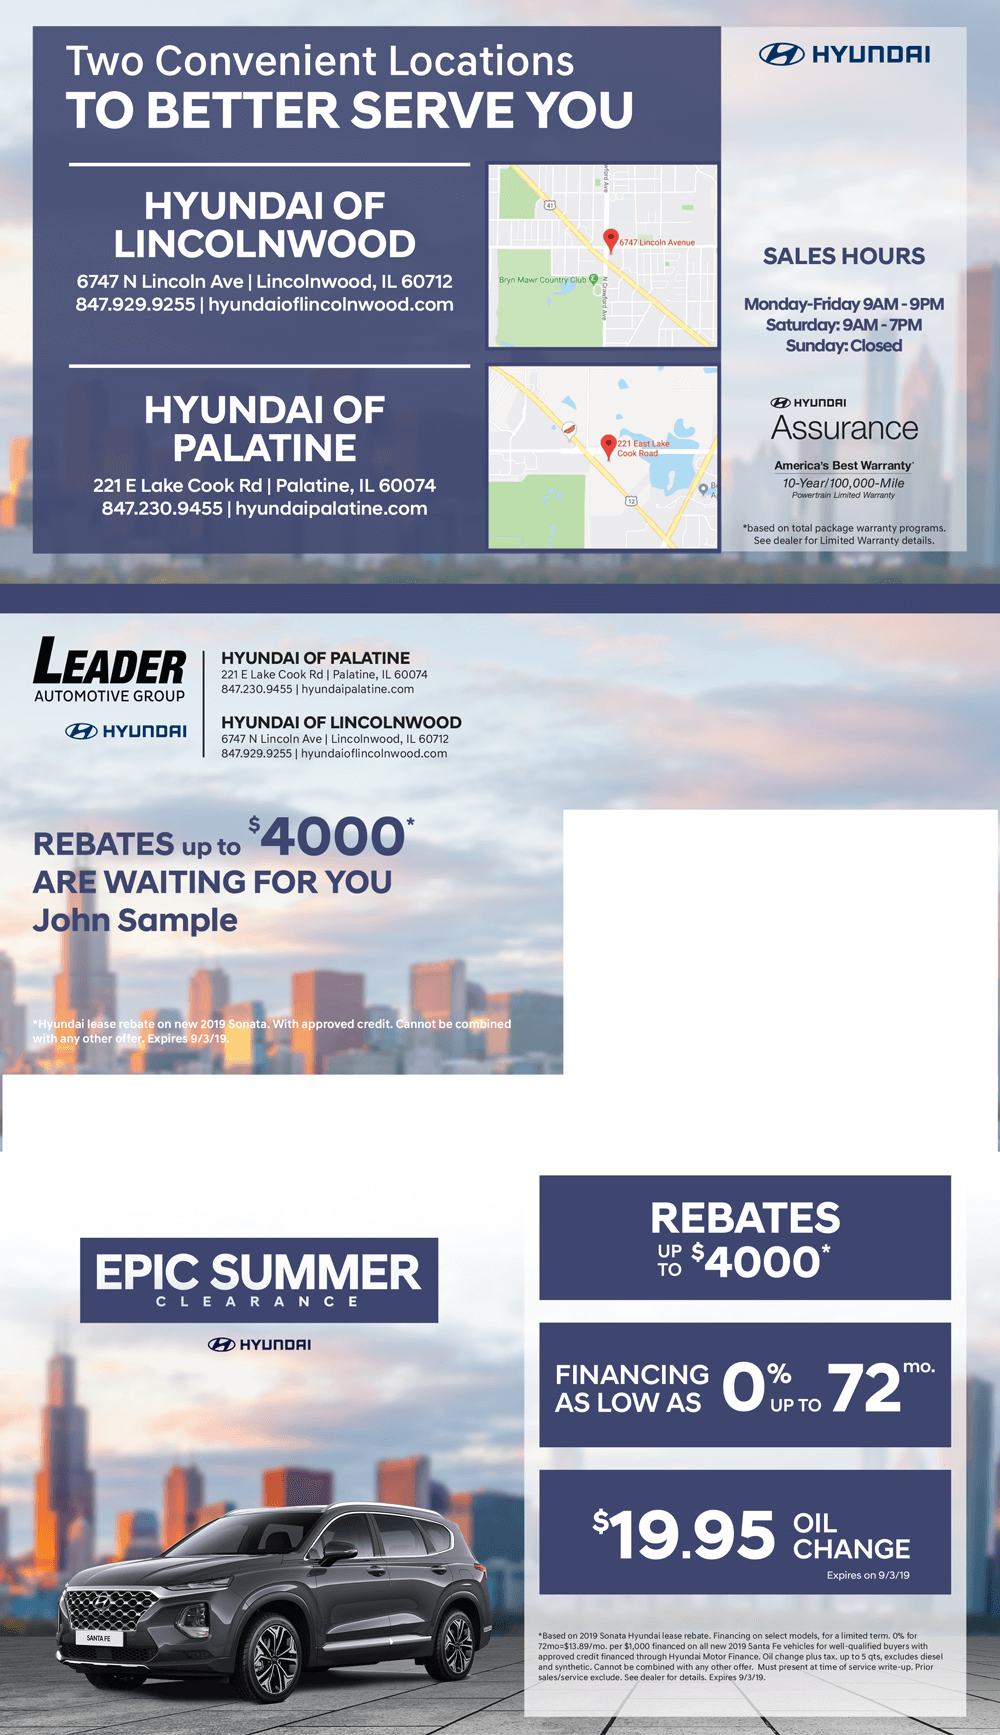 Leader Automotive sales event direct mail layout